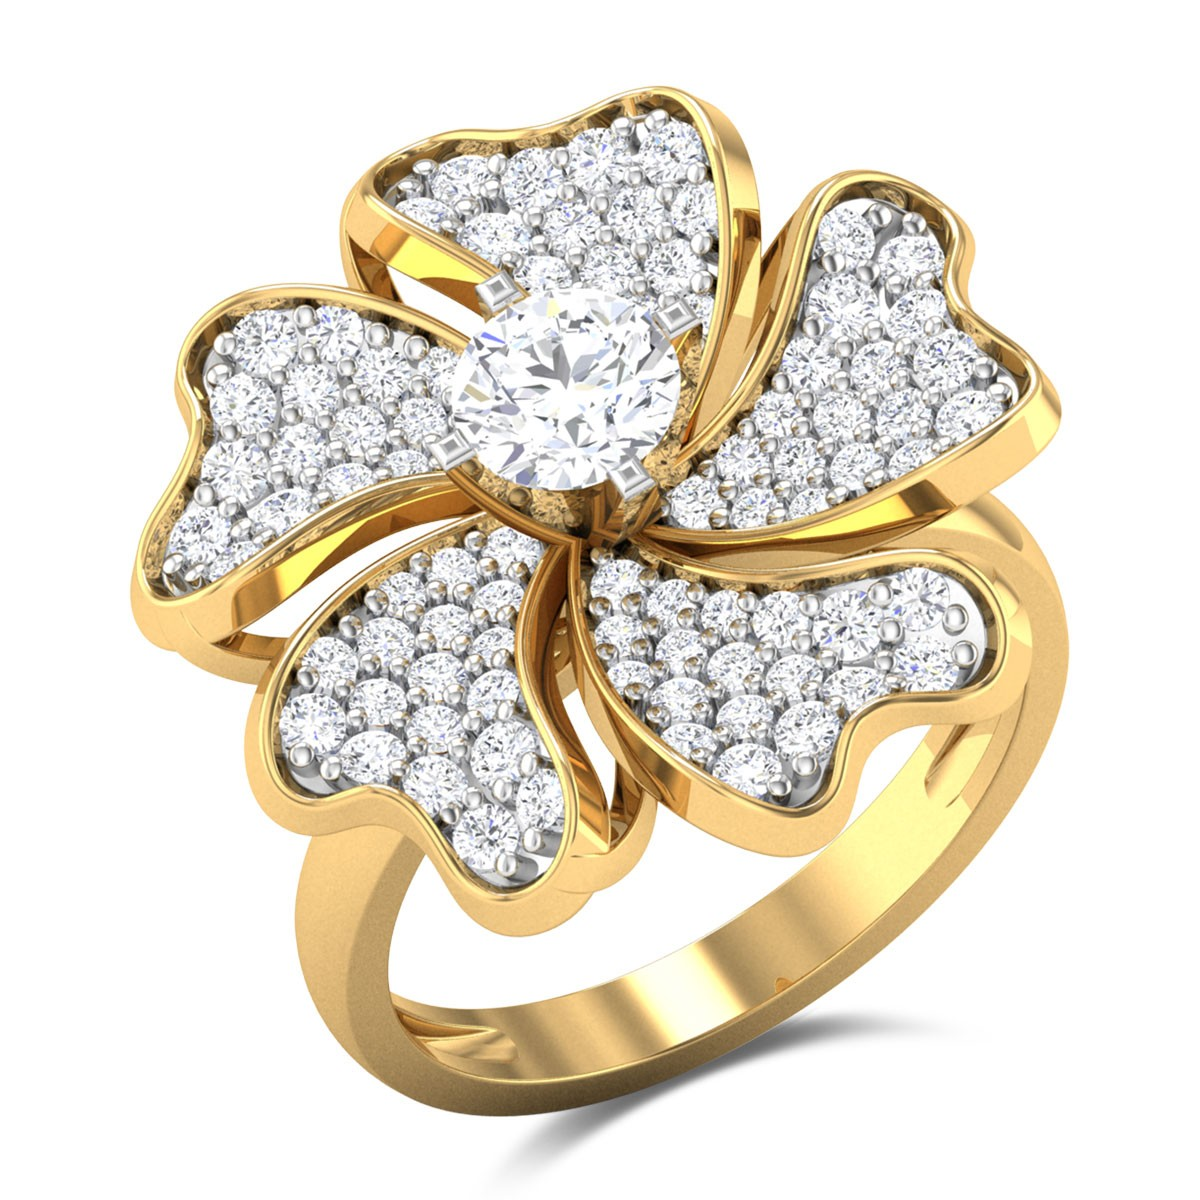 Chaithra Floral Solitaire Ring